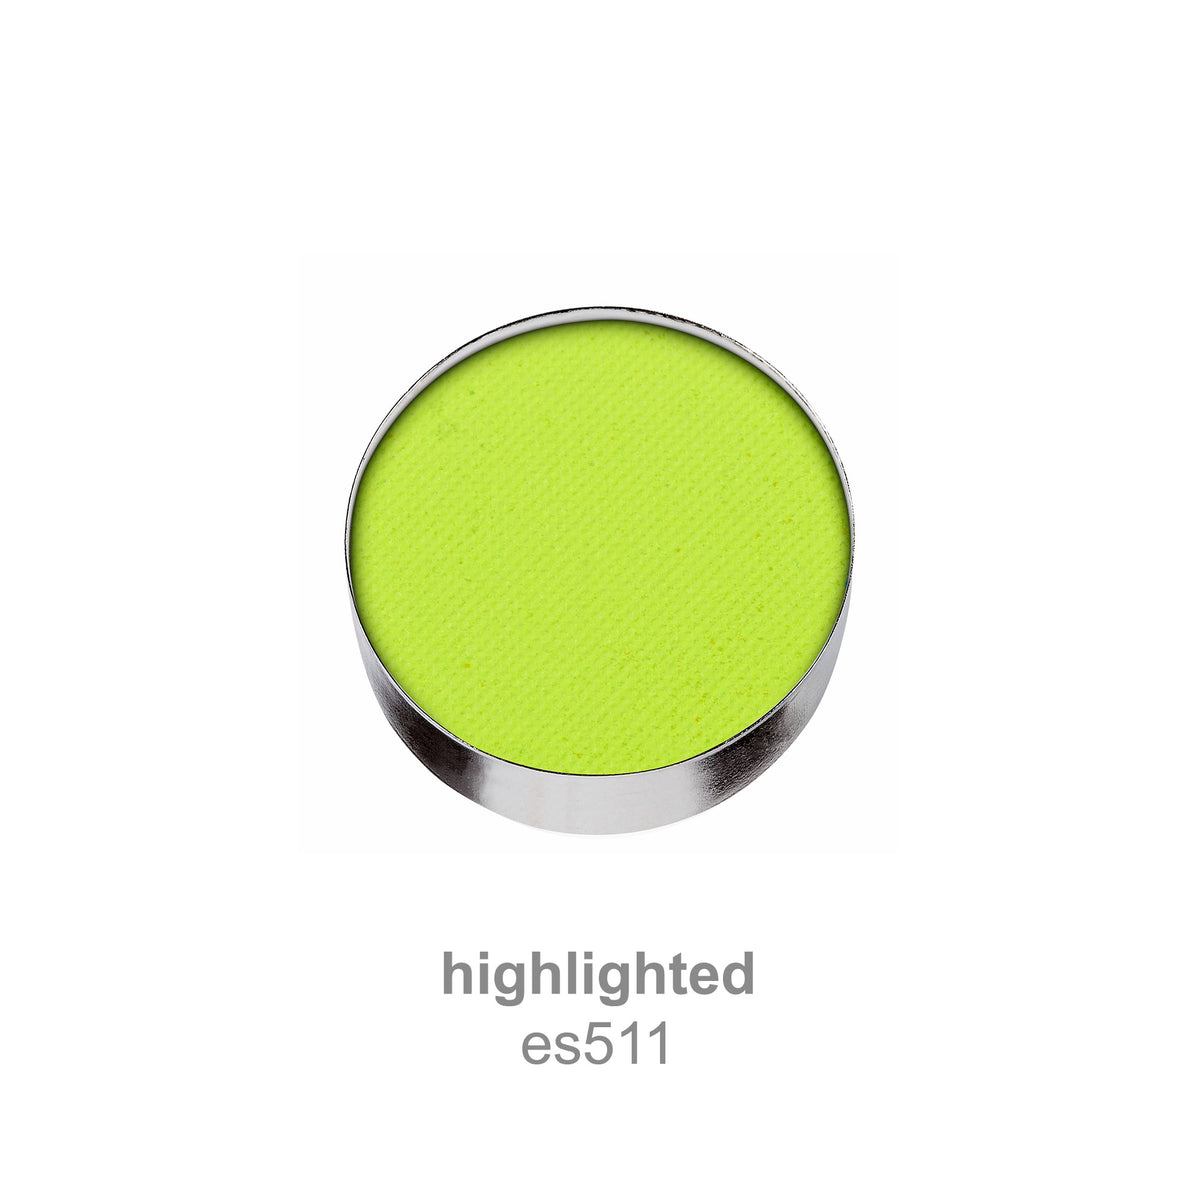 highlighted (es511)